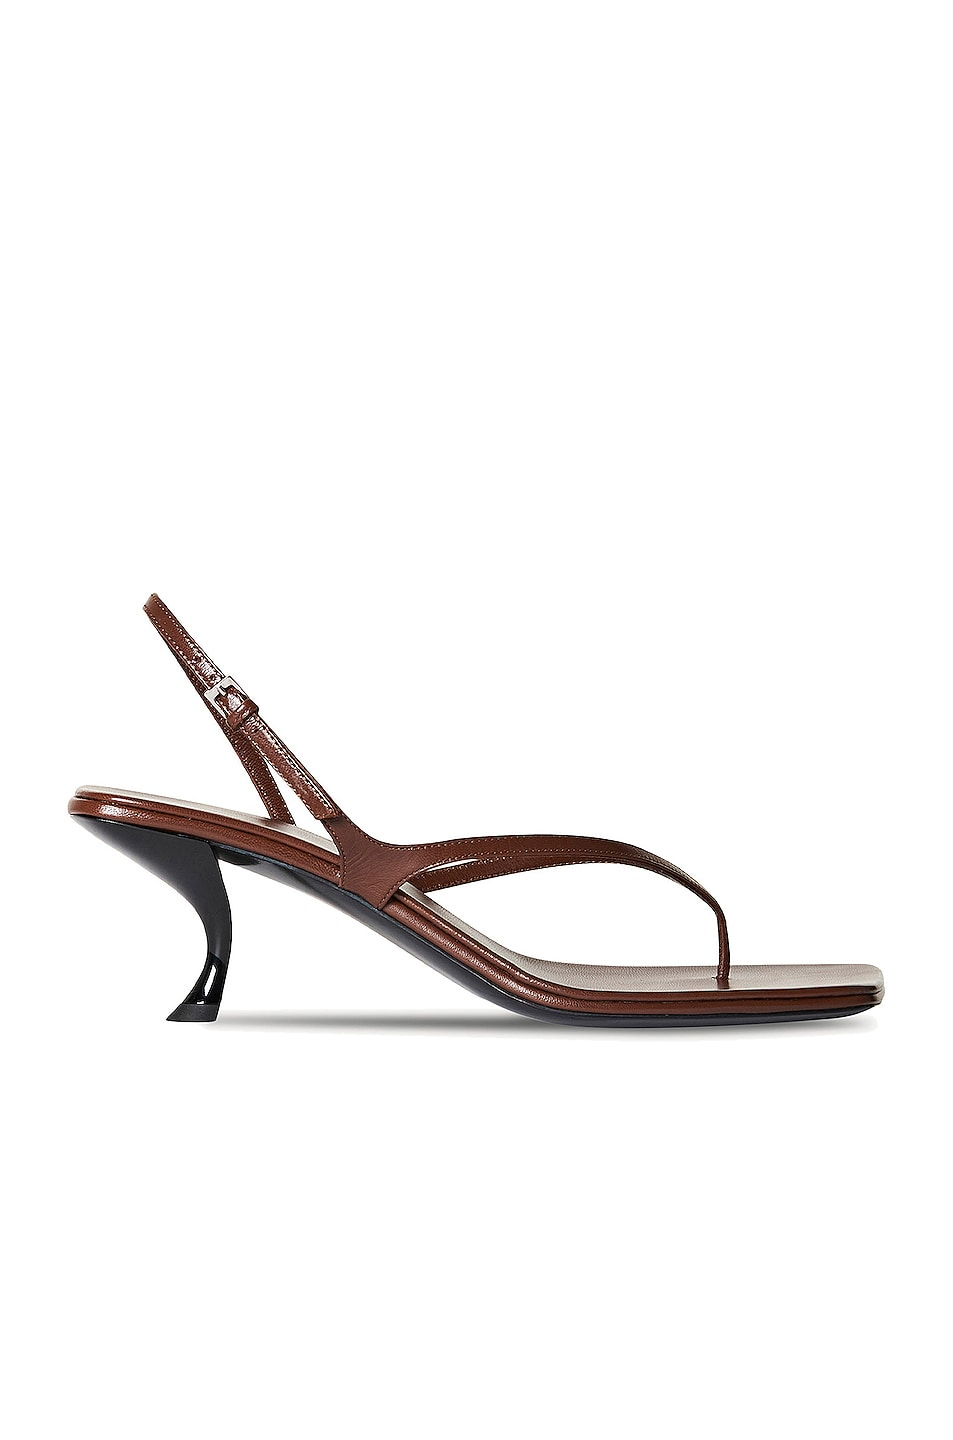 Image 1 of The Row Constance Leather Sandals in Walnut